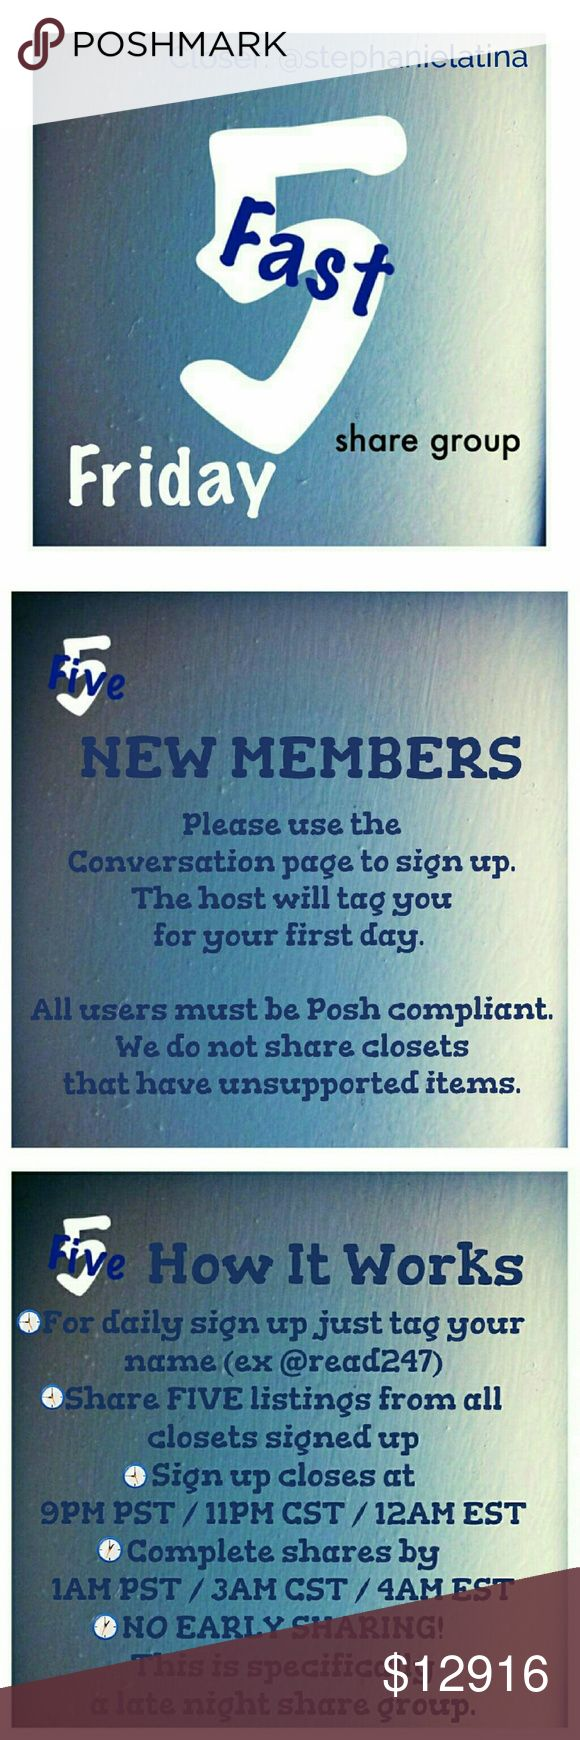 ⏳Friday, 12/9, Fast 5 Sign Up Sheet⌛ 🌃New group members please sign up on the Conversation page. 🌃POSH COMPLIANT CLOSETS ONLY! 🌃If you have any ?s please use the conversation page. 🌃Share FIVE available listings. 🌃Sign up is open until 9PM PST /11PM CST /12AM EST 🌃You have until 1AM PST /3AM CST /4AM EST to finish sharing. 🌃NO EARLY SHARING! This group was created specifically for sharing at night. 🌃THIS IS THE DAILY SIGN UP SHEET! 🌃PLEASE BE SURE TO LIKE THE CONVERSATION PAGE…